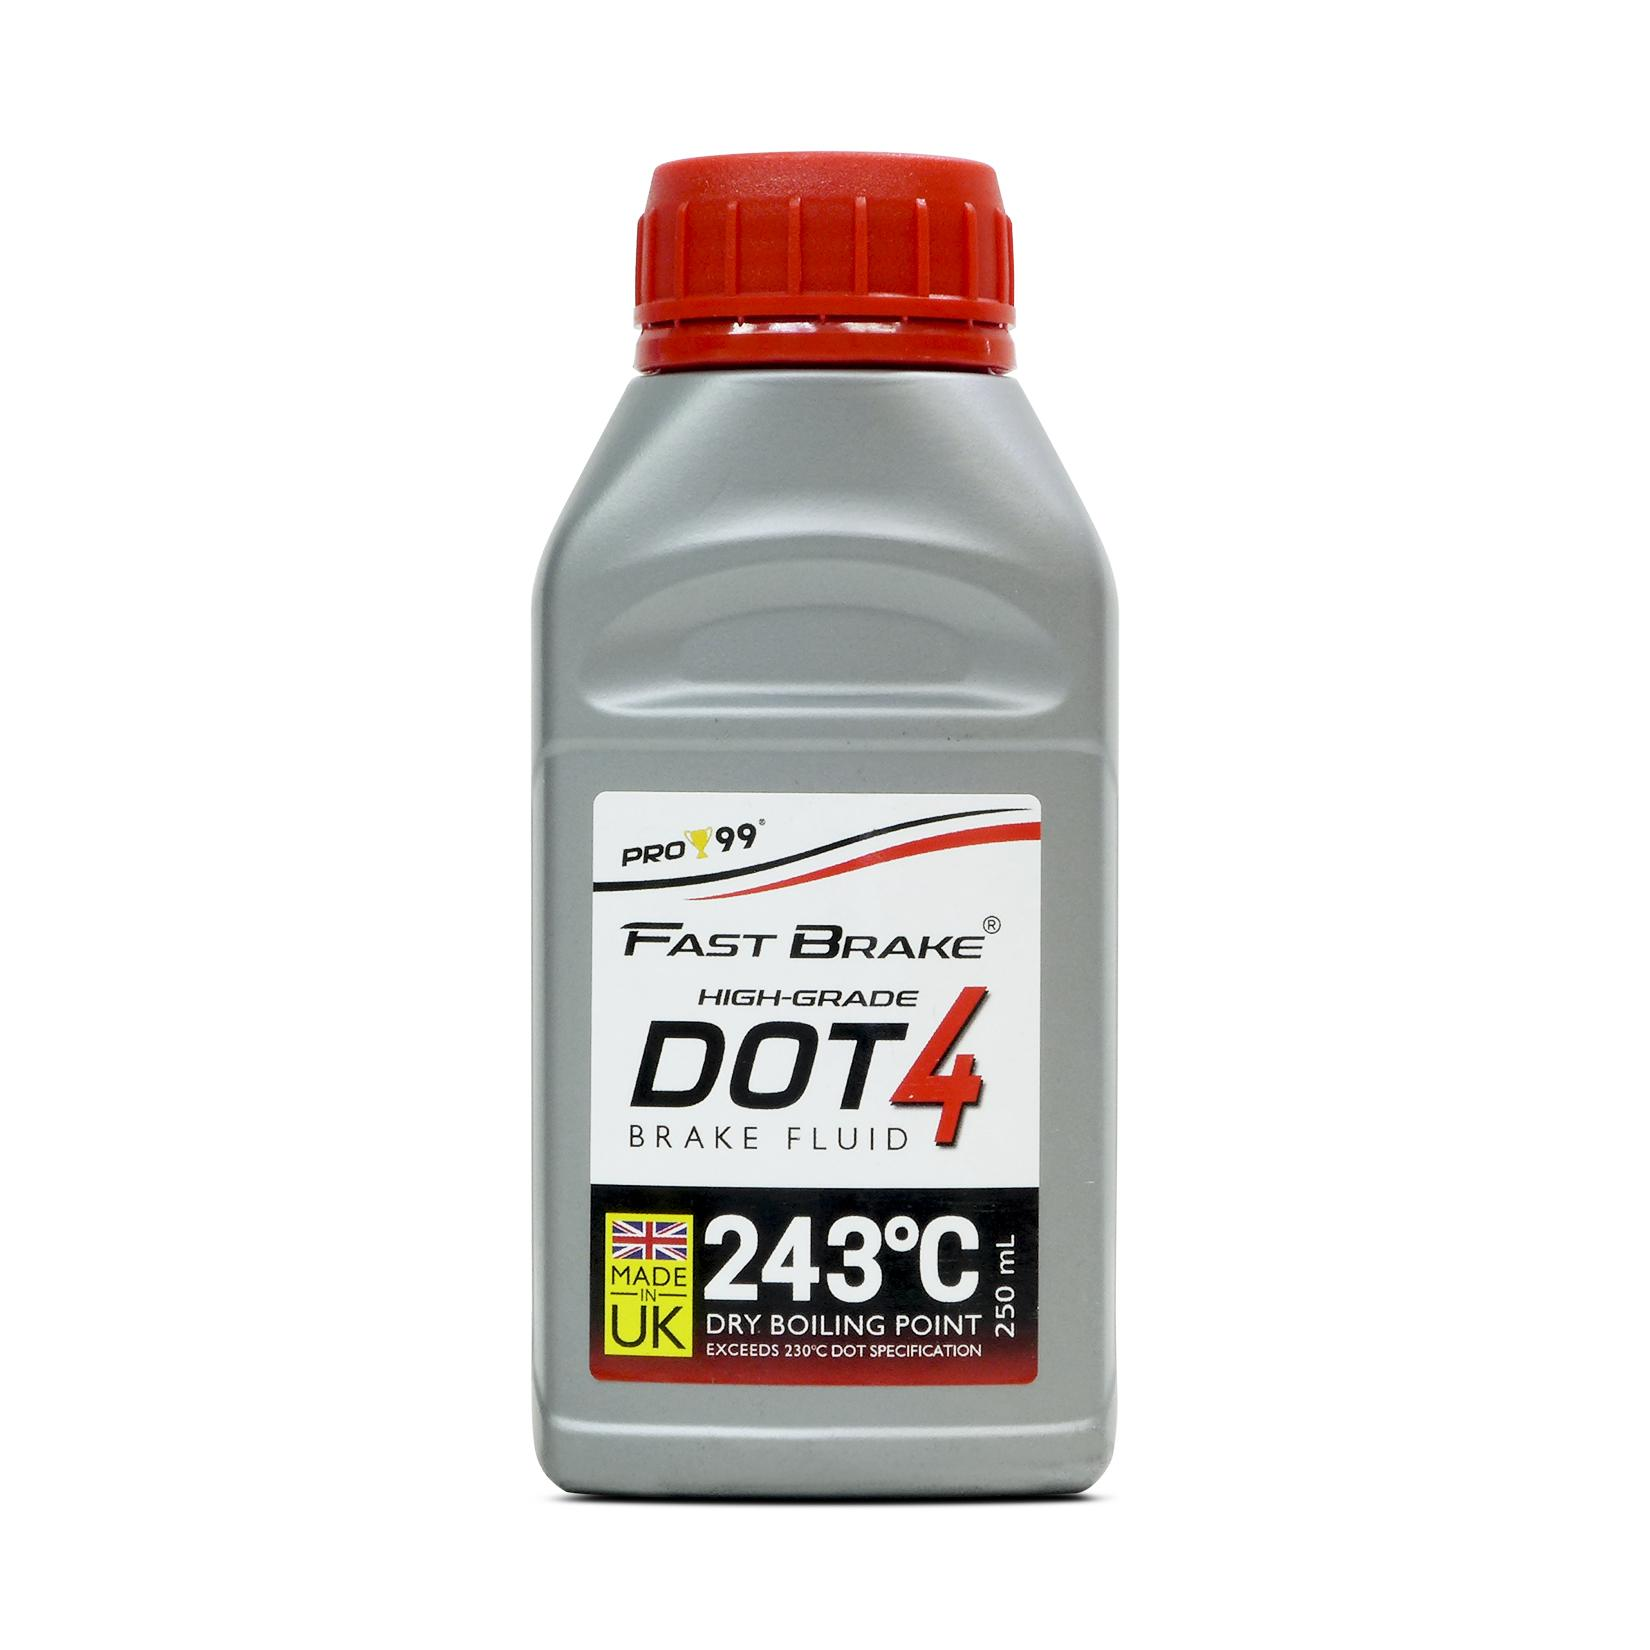 Pro-99 Fastbrake High-Grade Dot-4 Brake Fluid 250ml Pbf4-8190-250 By Road-Fit Automotive Products.